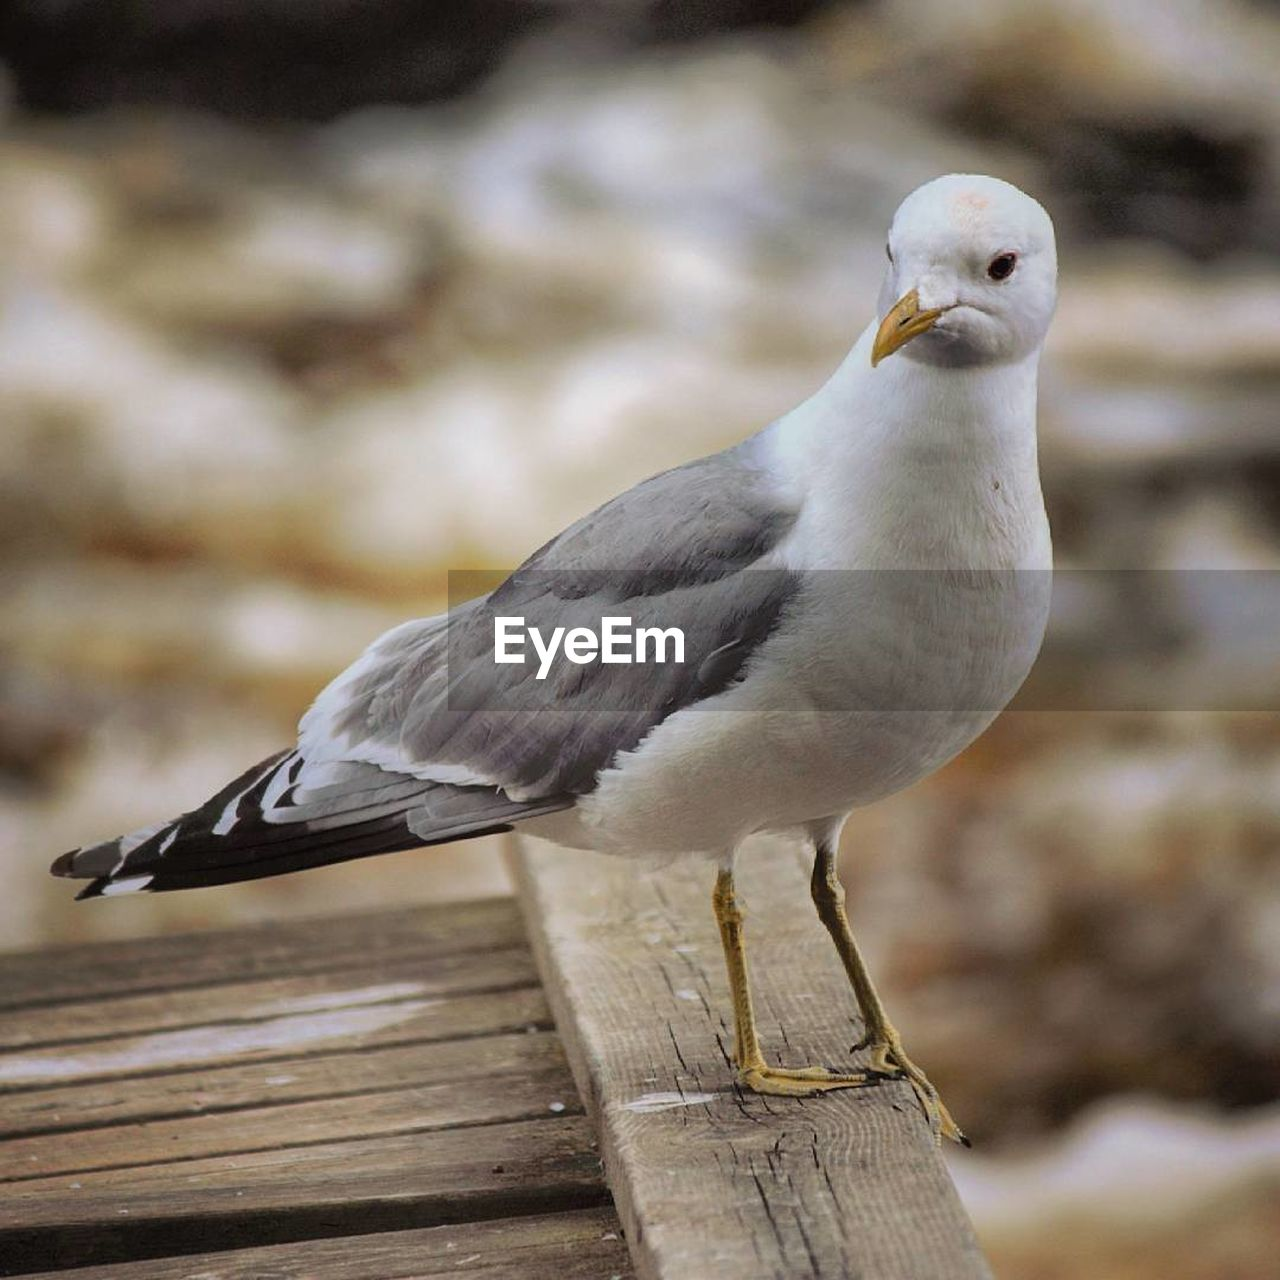 bird, one animal, animal themes, animals in the wild, animal wildlife, focus on foreground, perching, day, no people, wood - material, seagull, outdoors, close-up, nature